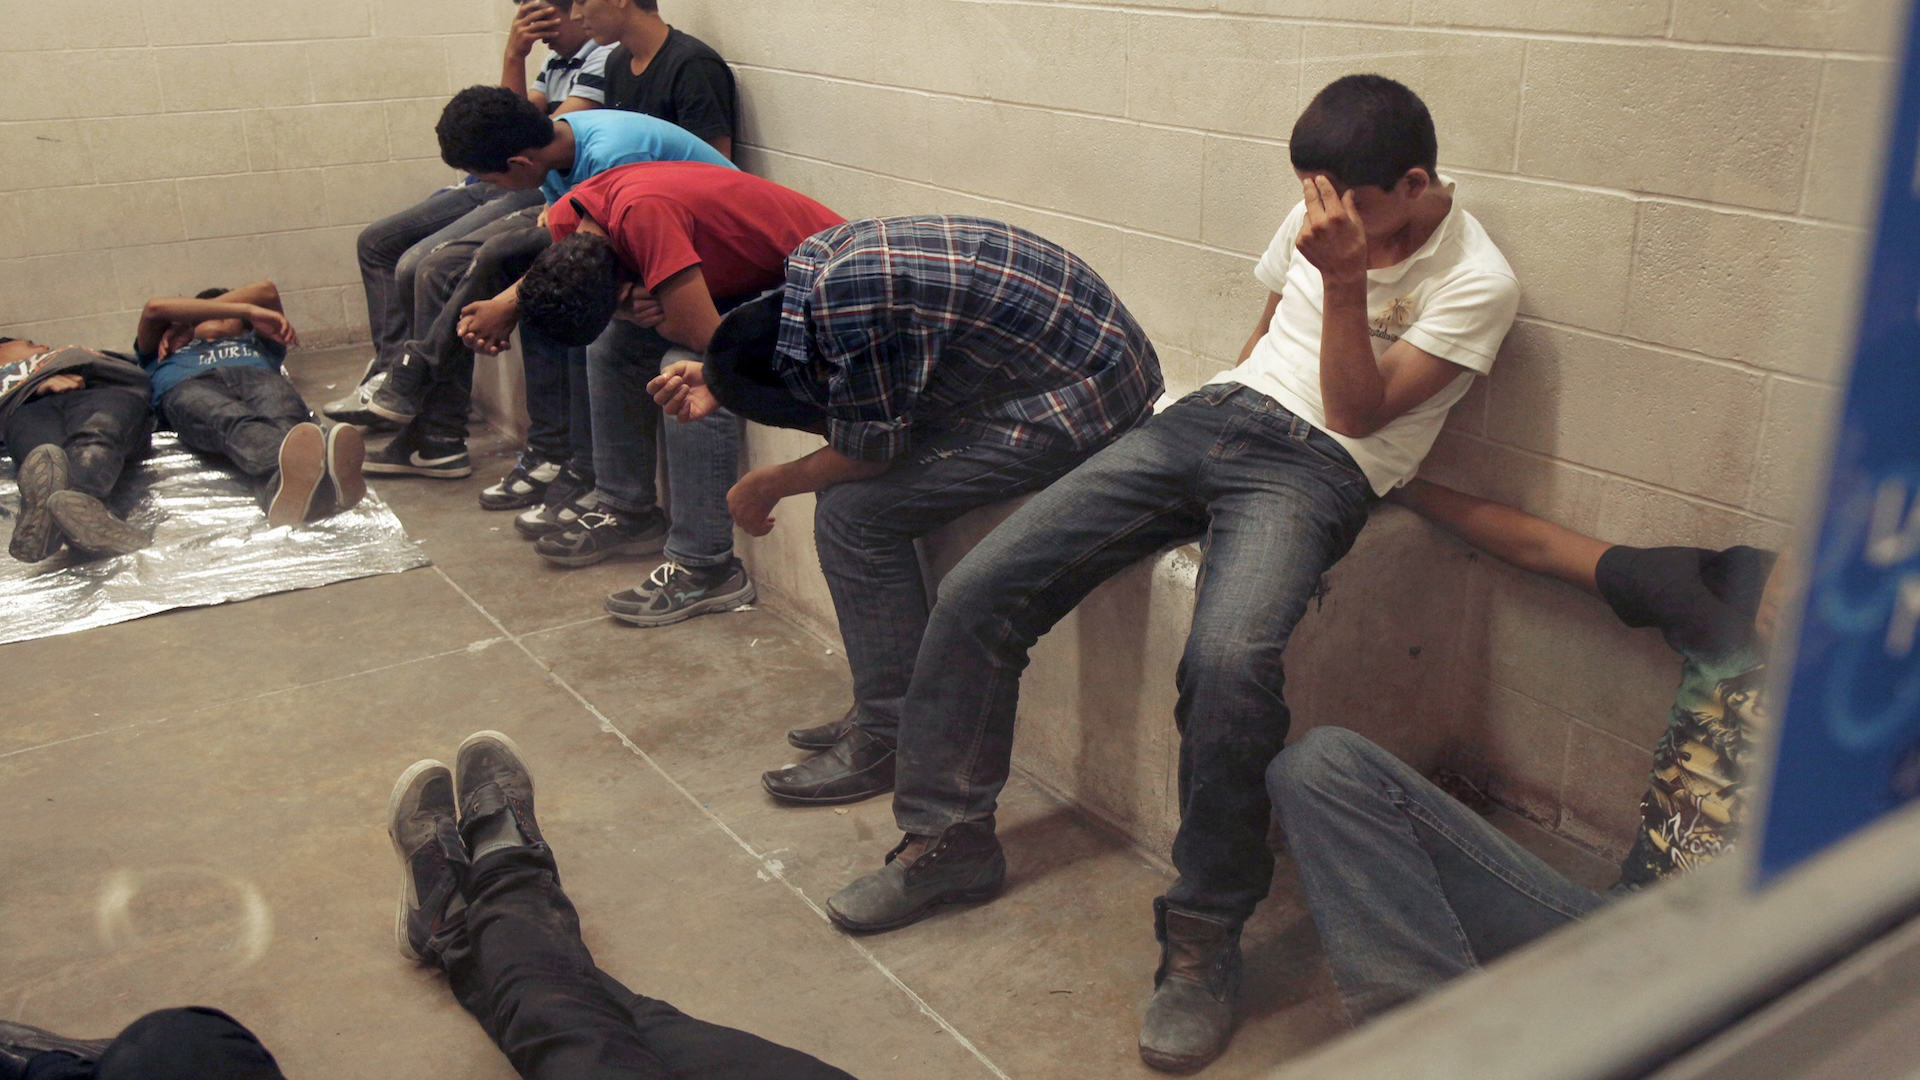 Obama struggling with immigration rules and cruelties of deportation